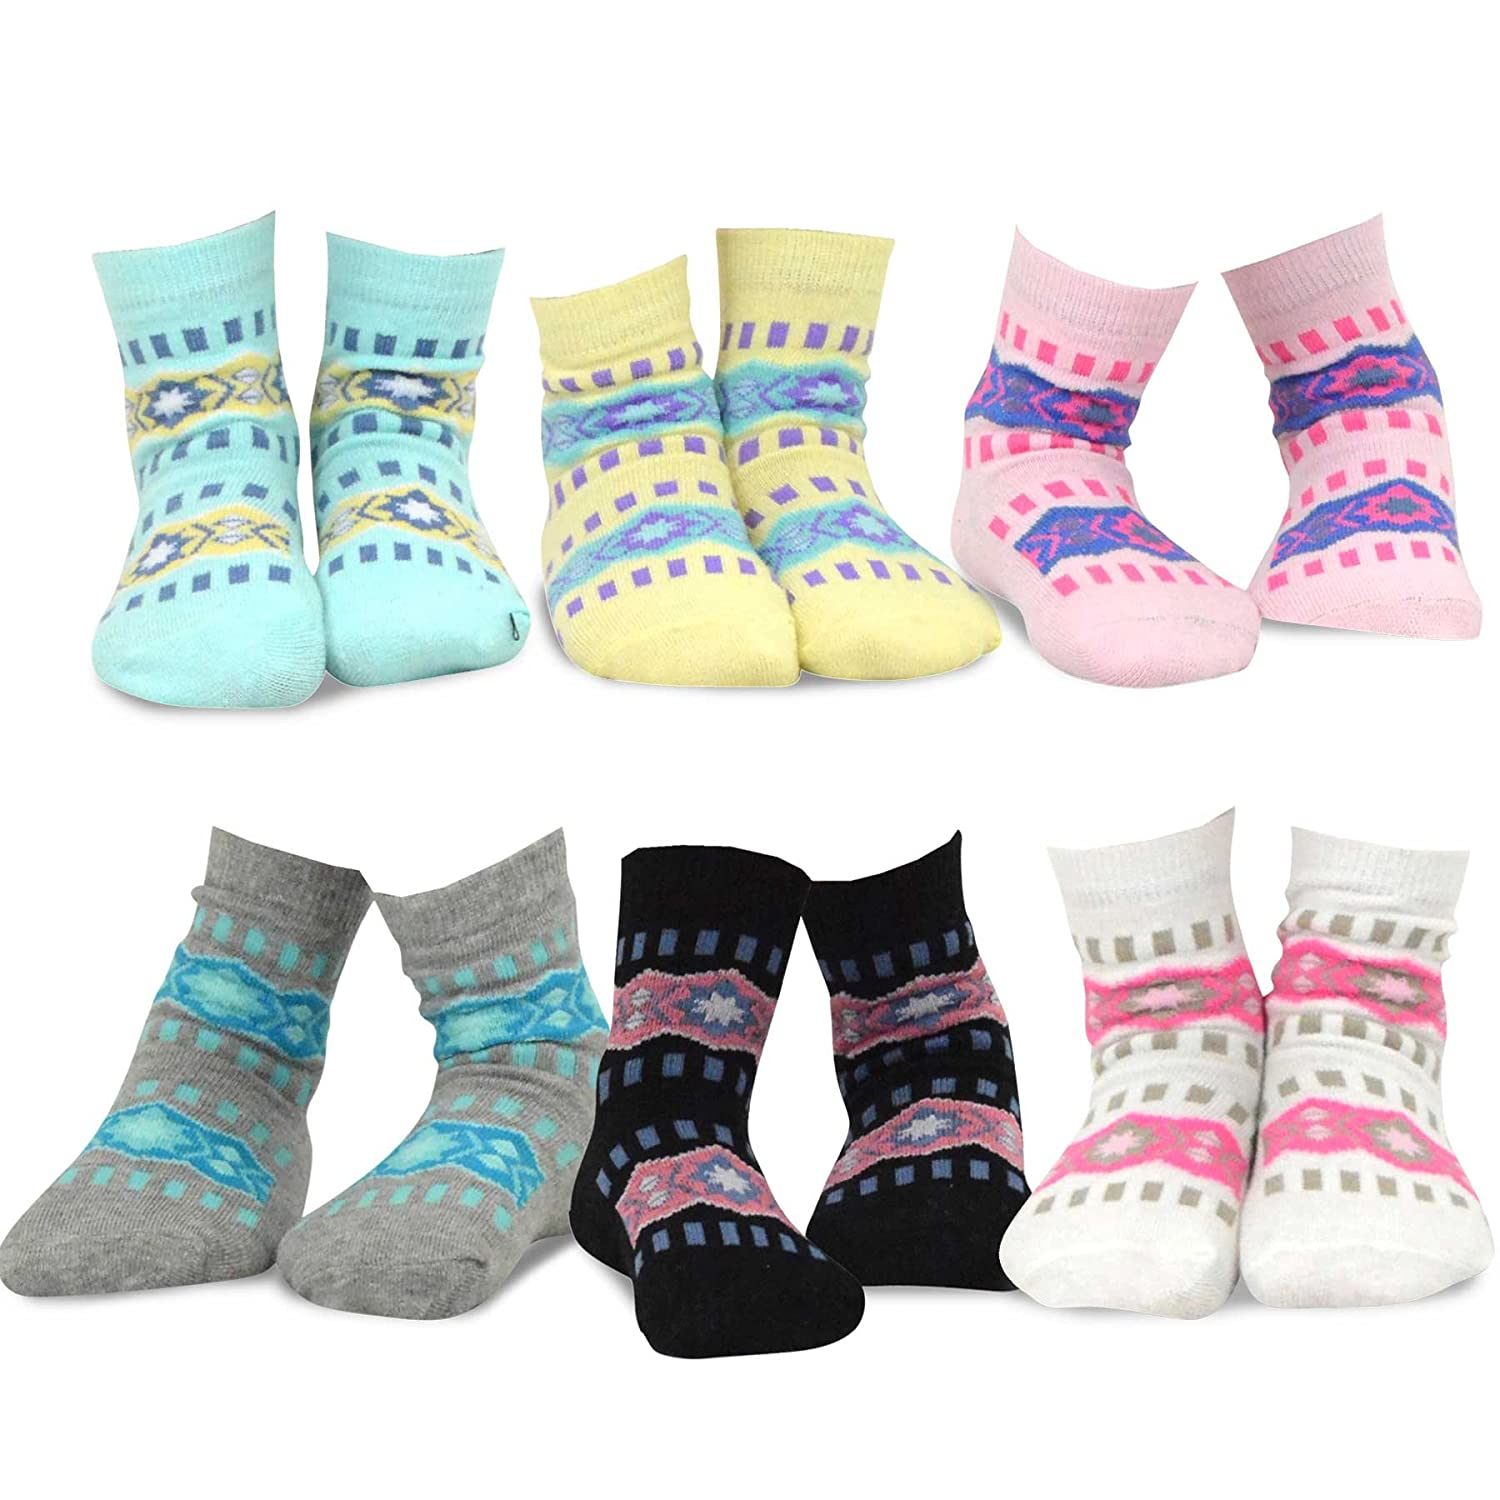 TeeHee (Naartjie) Kids Girls Cotton Fashion Fun Crew Socks 6 Pair Pack